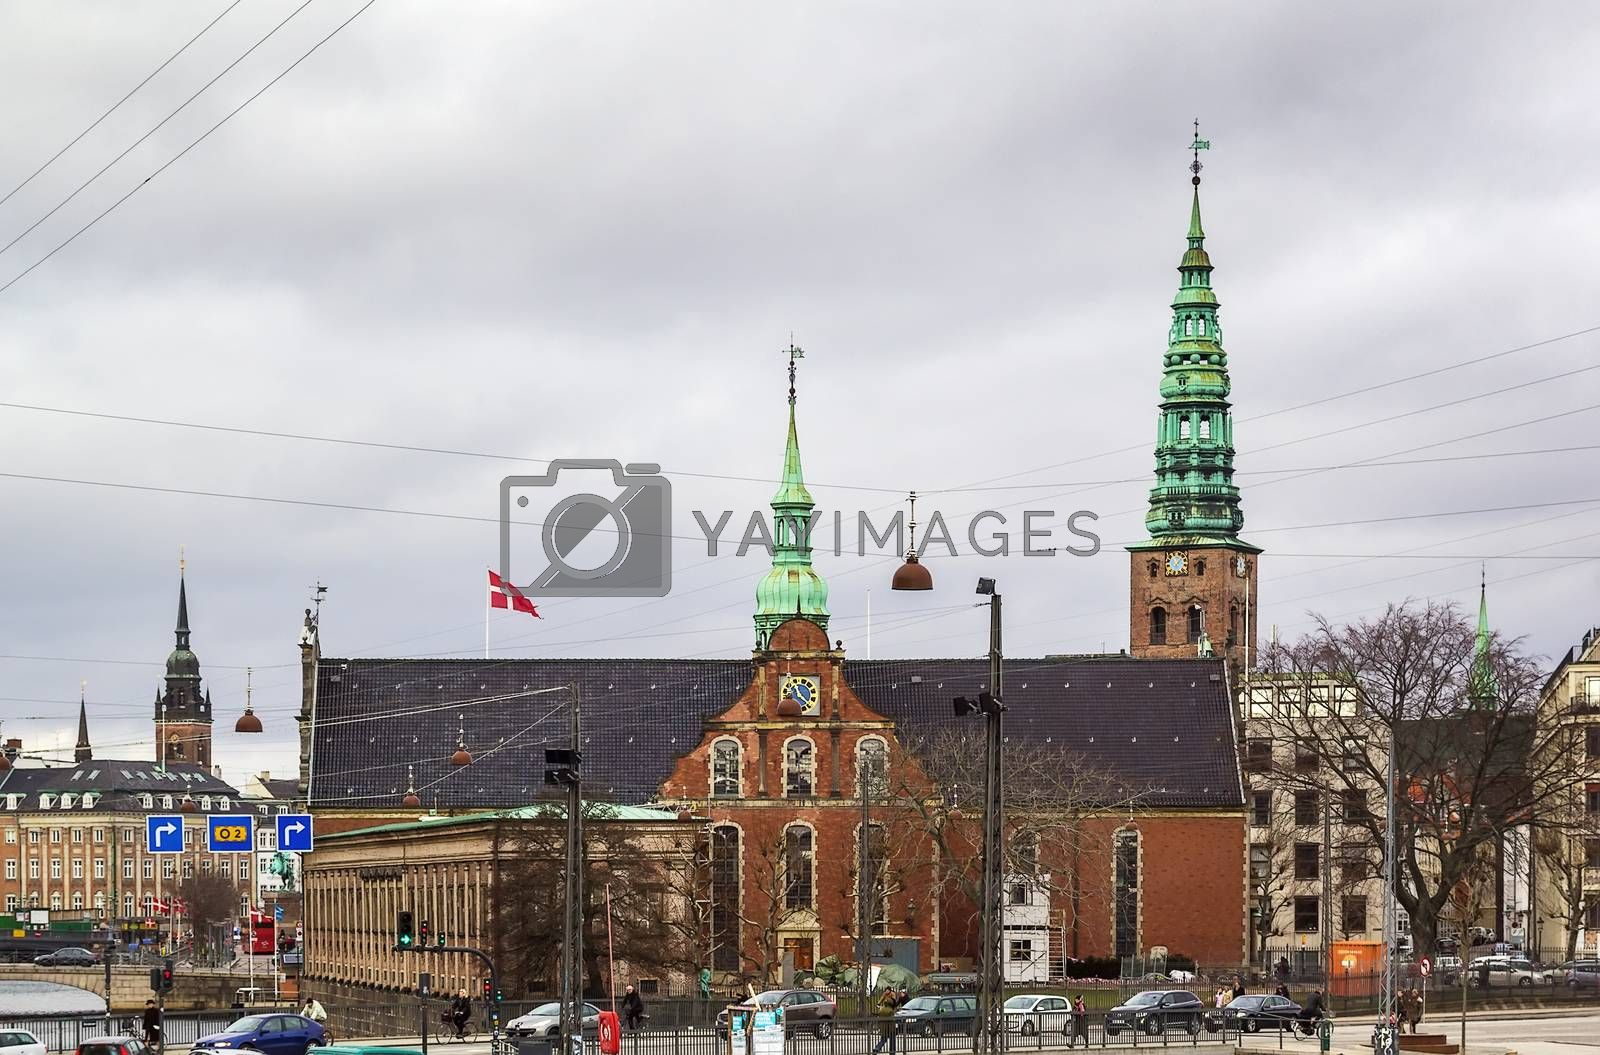 Church of Holmen, Copenhhagen by borisb17